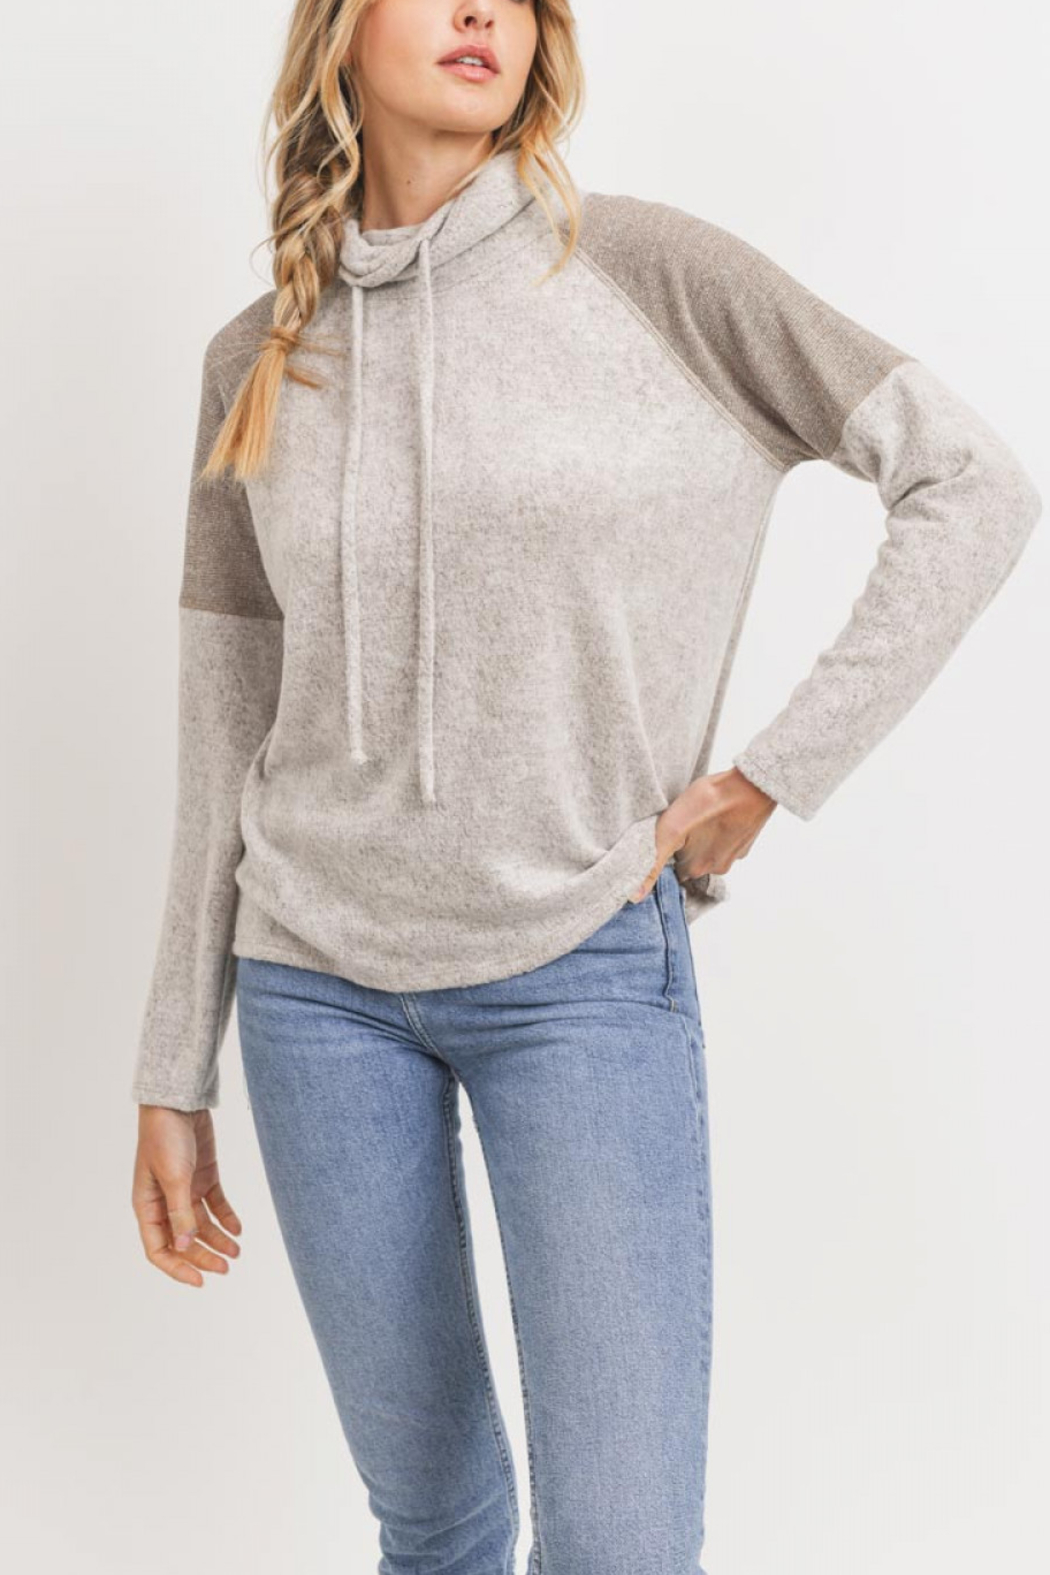 Lyn-Maree's  Ultra Soft Contrast Top - Main Image